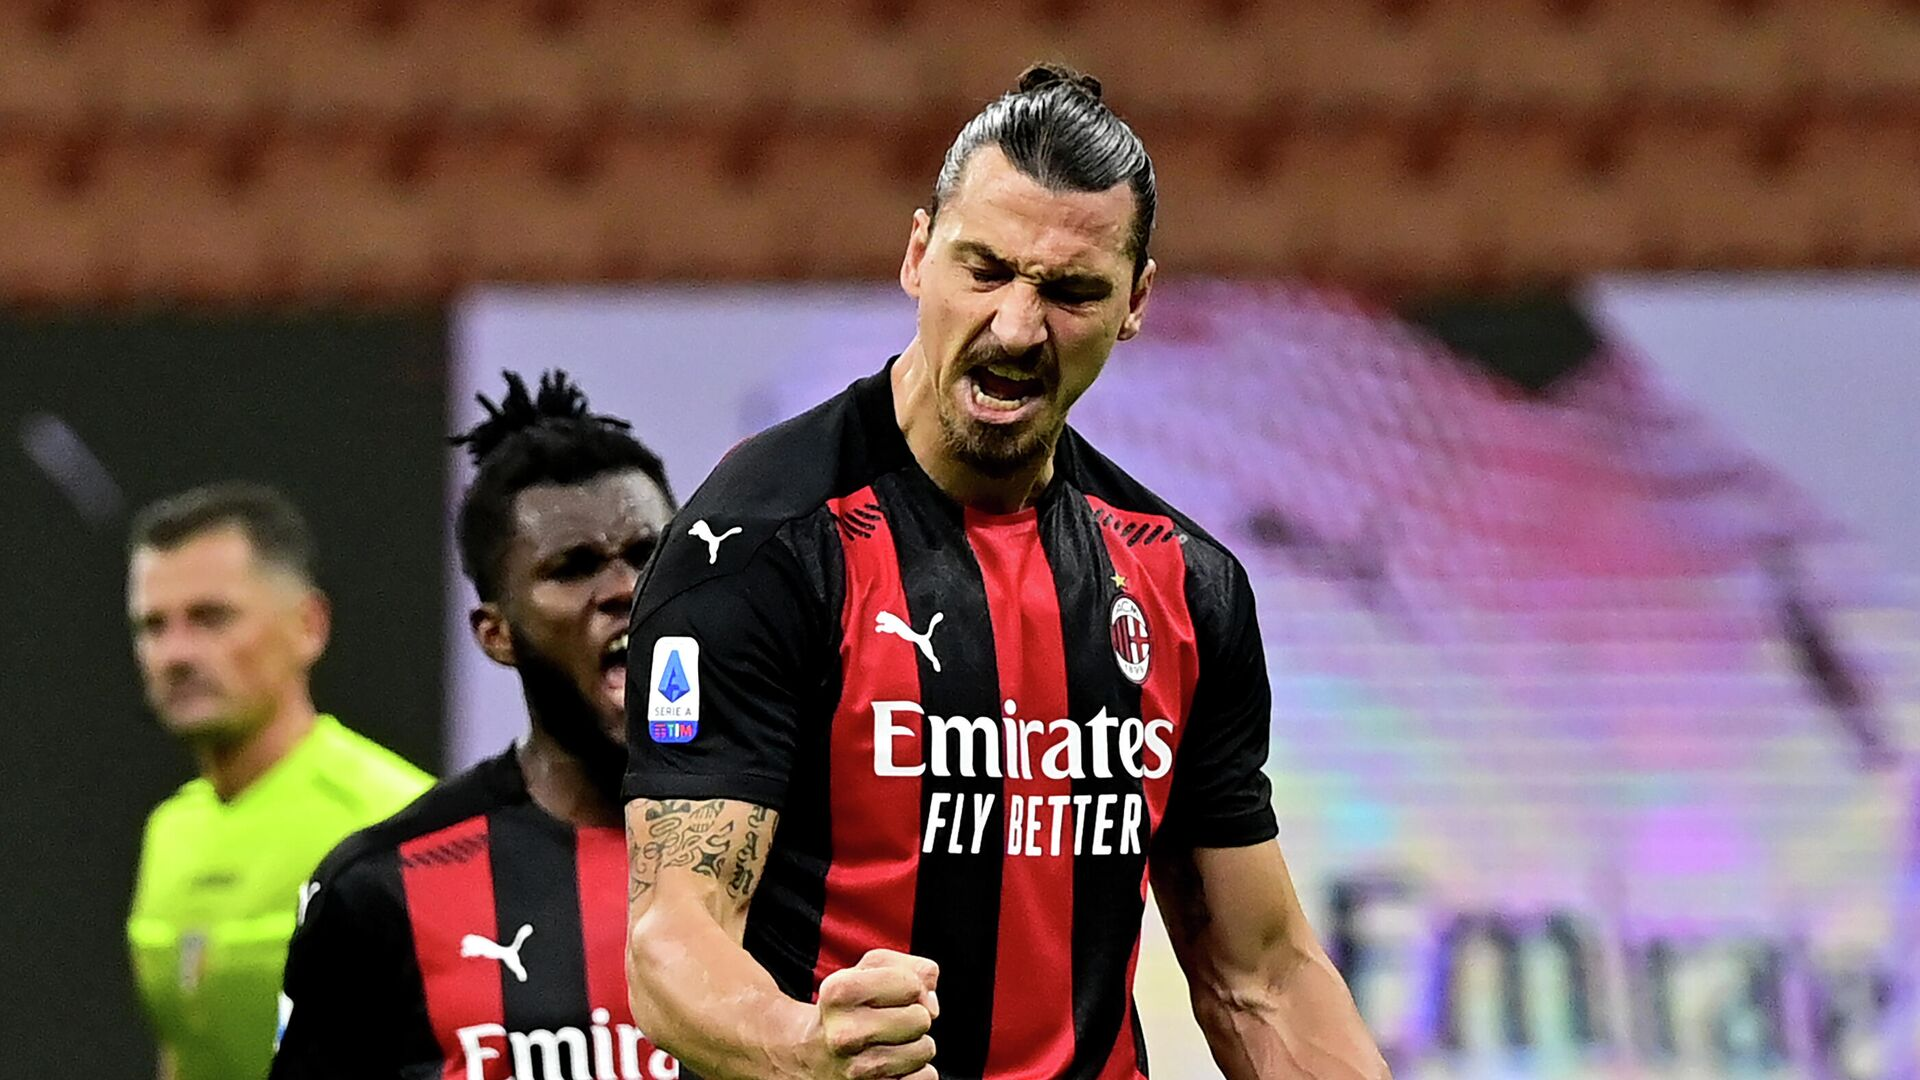 AC Milan's Swedish forward Zlatan Ibrahimovic celebrates after scoring a penalty against AS Roma during the Italian Serie A football match between AC Milan and AS Roma at the Meazza Stadium in Milan on October 26, 2020. (Photo by MIGUEL MEDINA / AFP) - РИА Новости, 1920, 27.10.2020